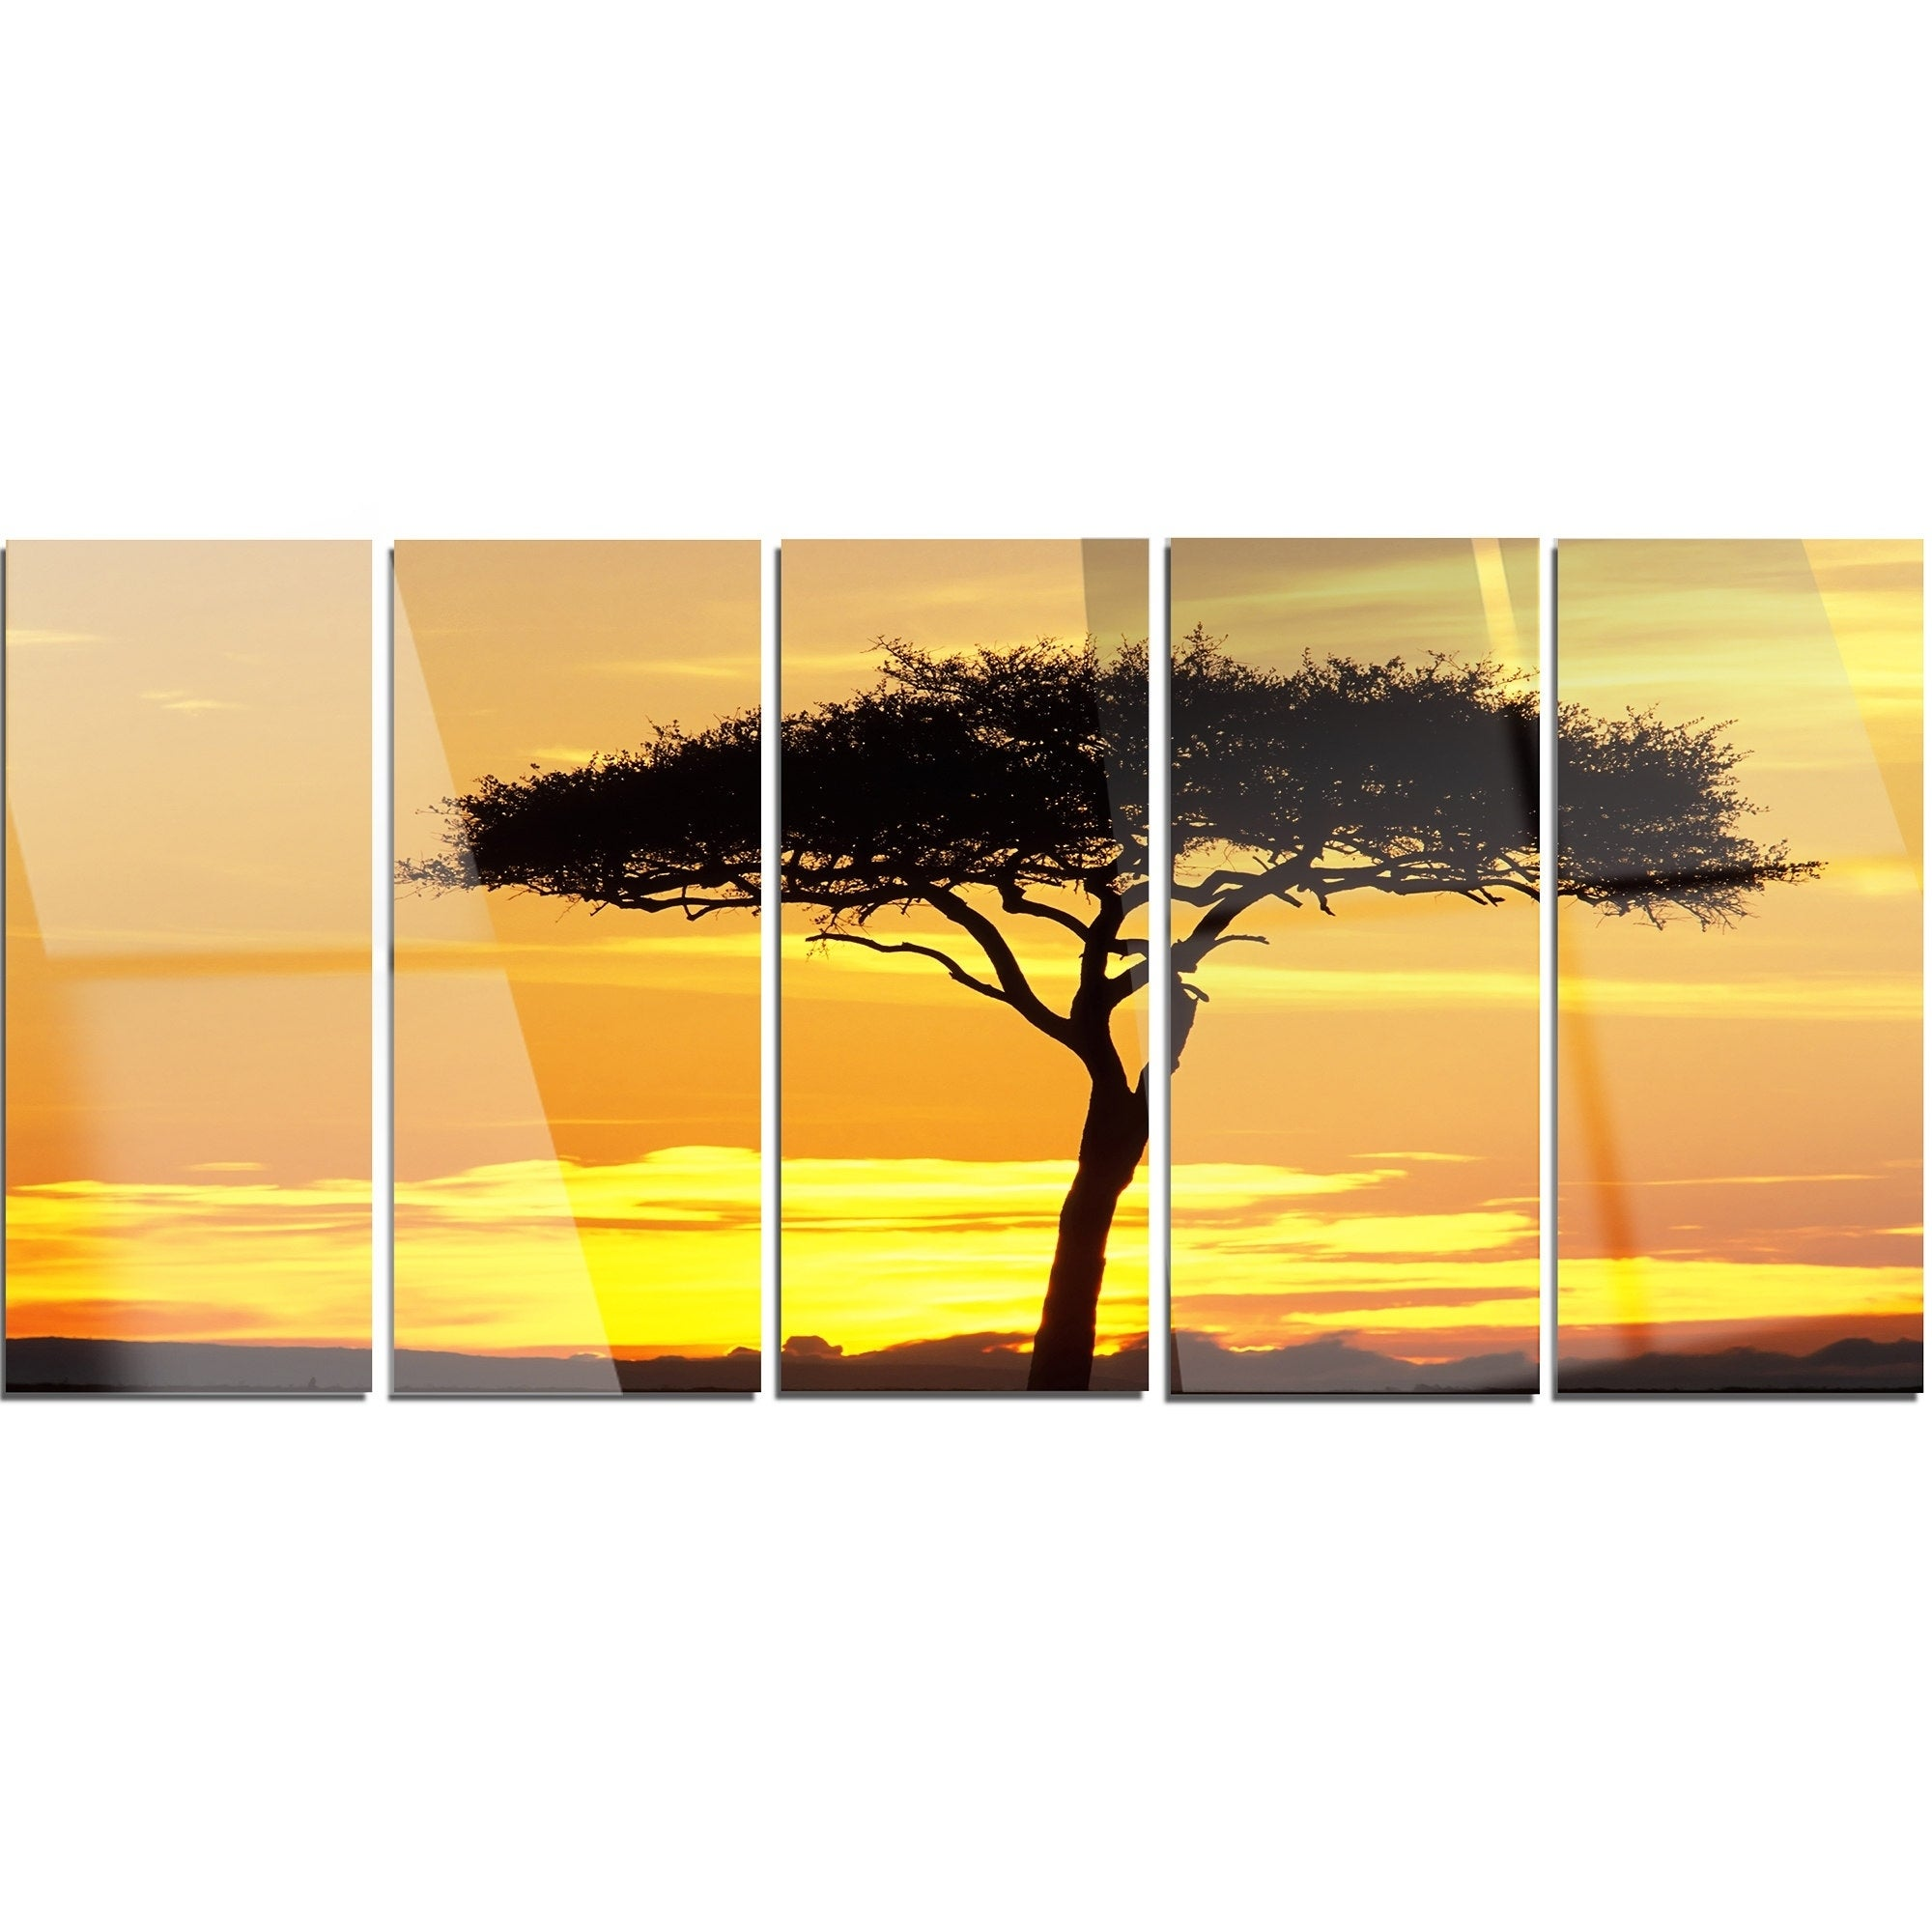 Best Metal Wall Art Branches Pictures Inspiration - The Wall Art ...